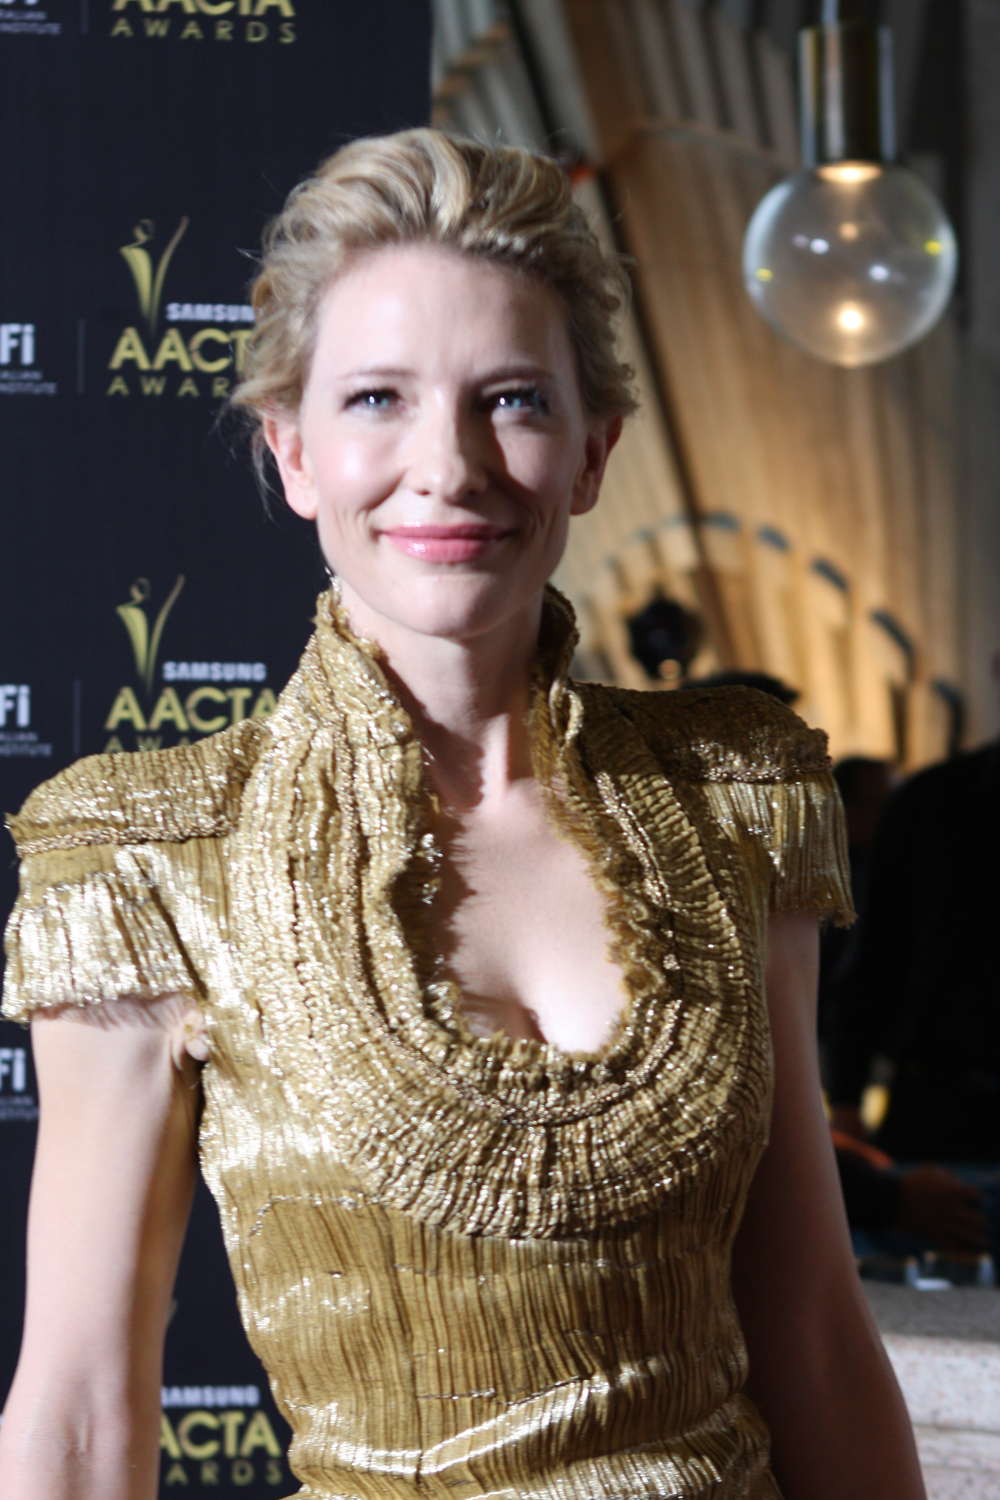 File:Cate Blanchett at the AACTA Awards (2012) 14.jpg ... Cate Blanchett Wikipedia